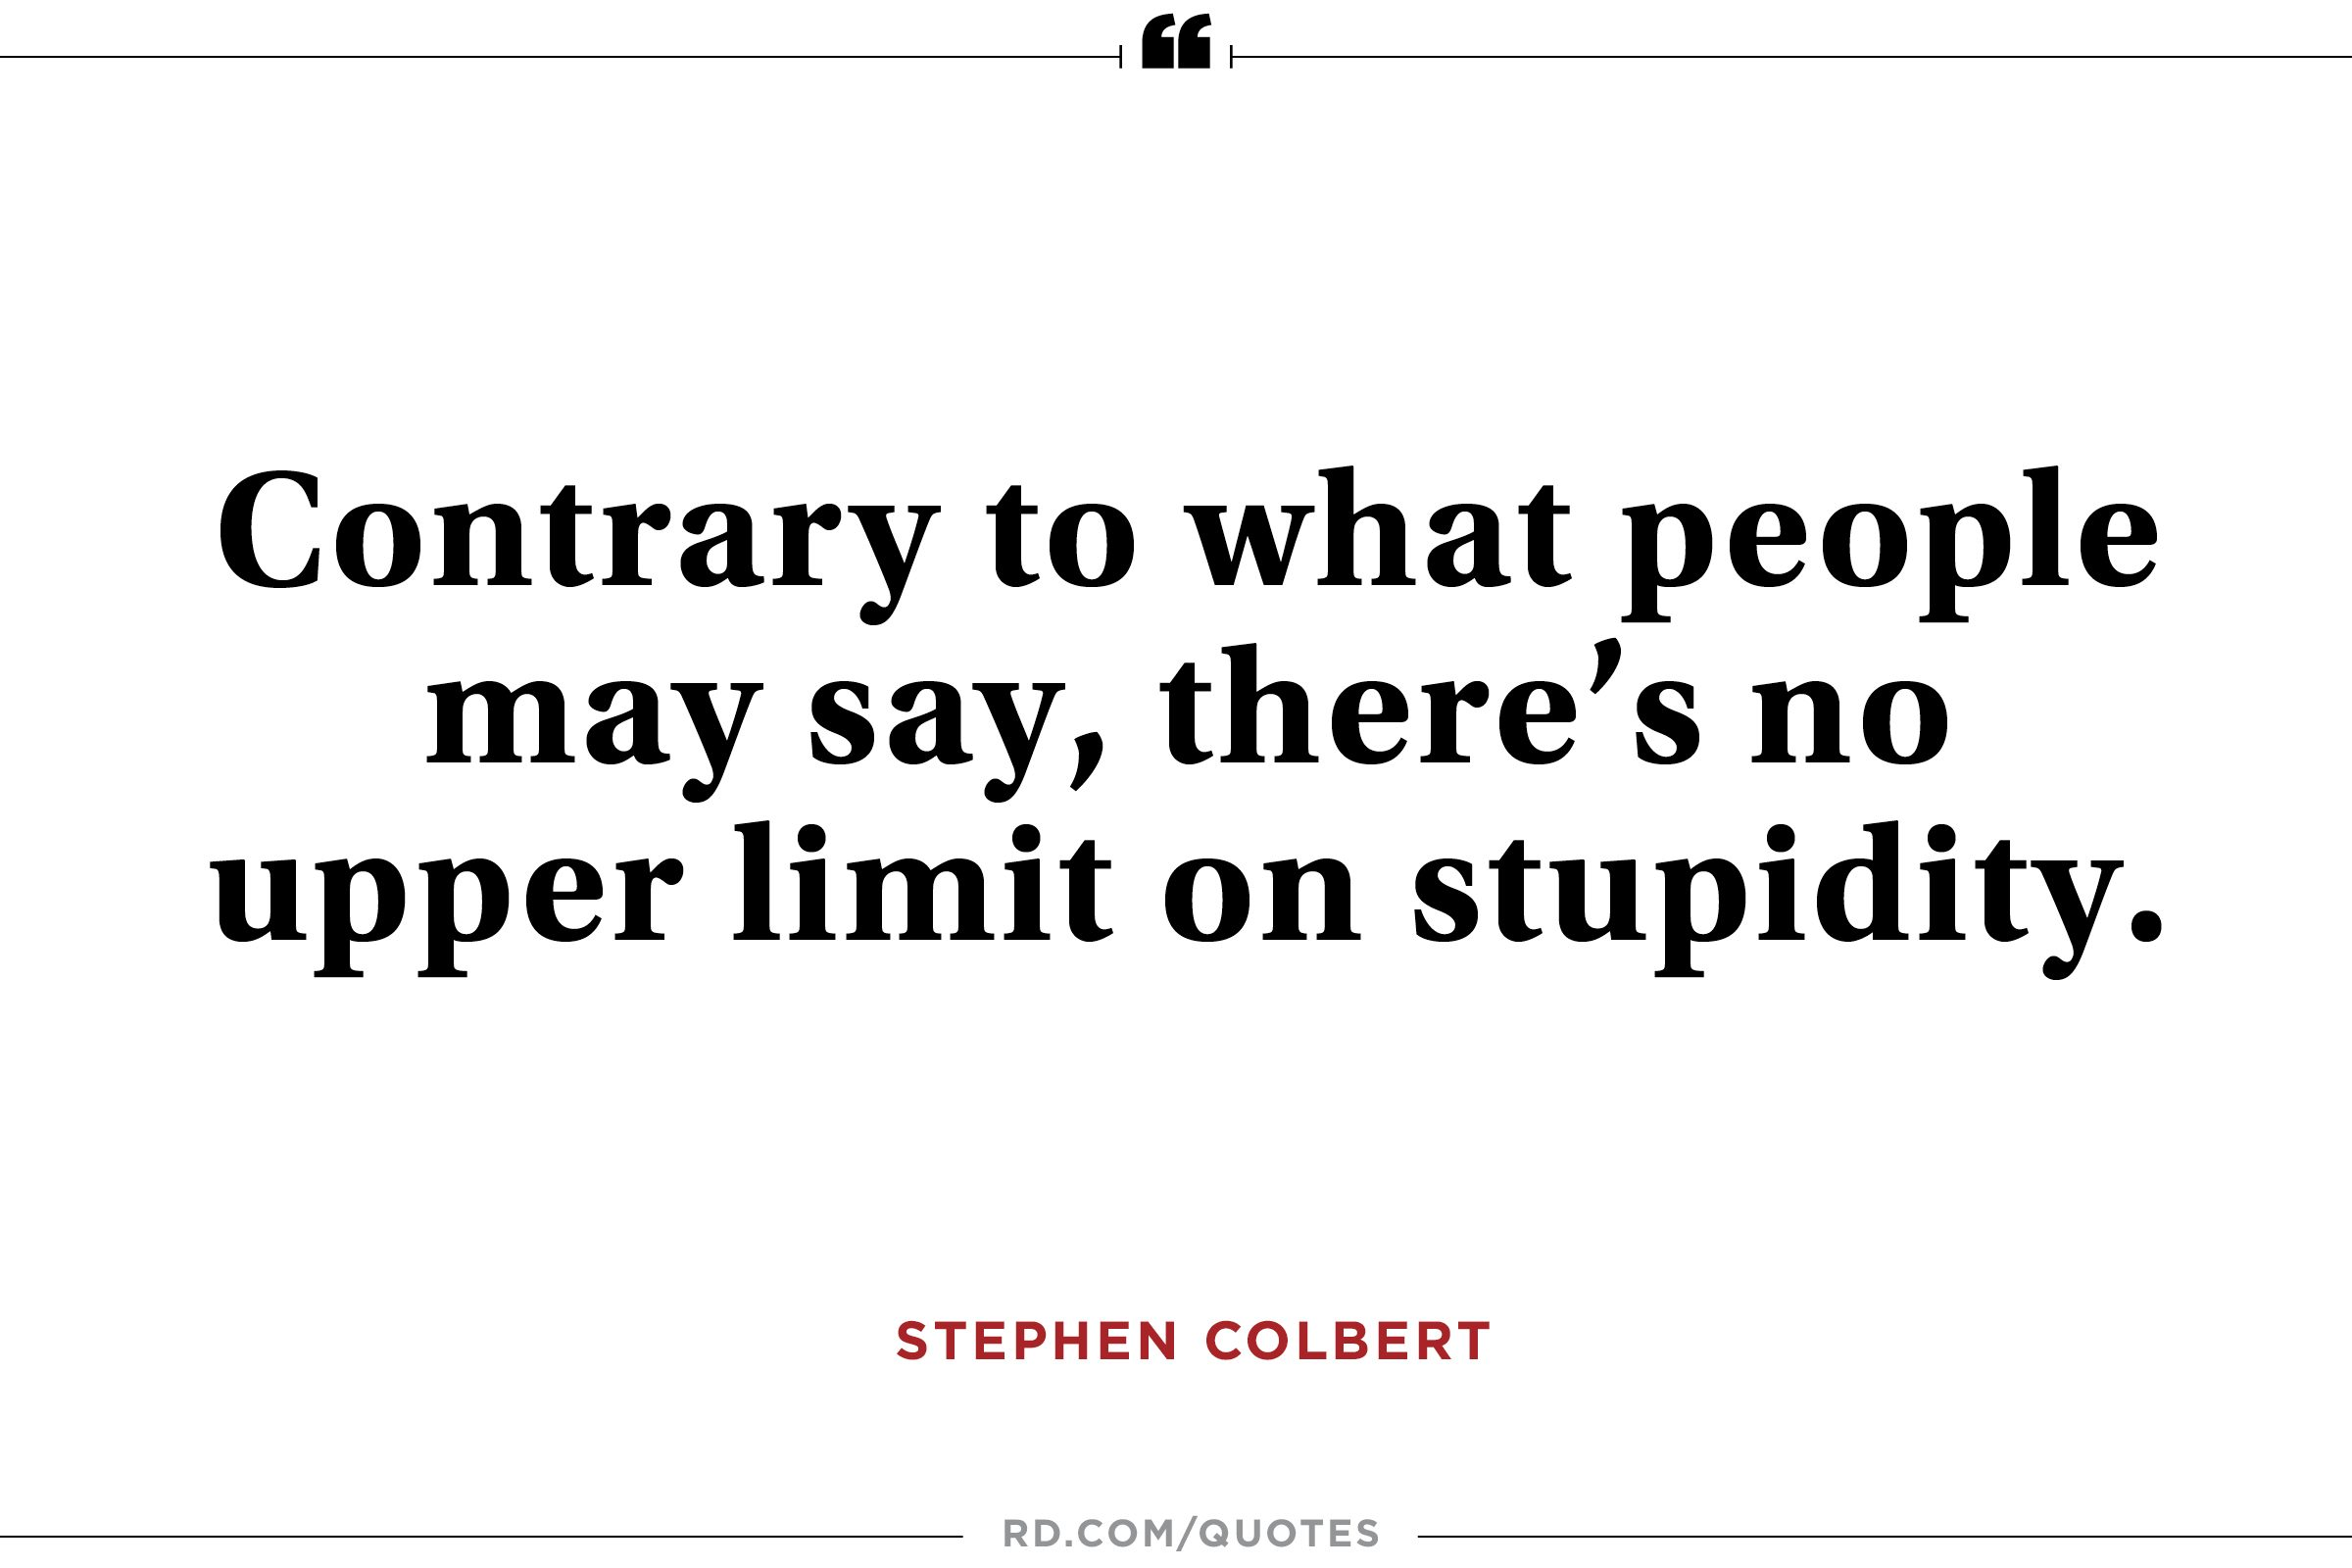 Deception Love Quotes 14 Bestever Stephen Colbert Quotes  Reader's Digest